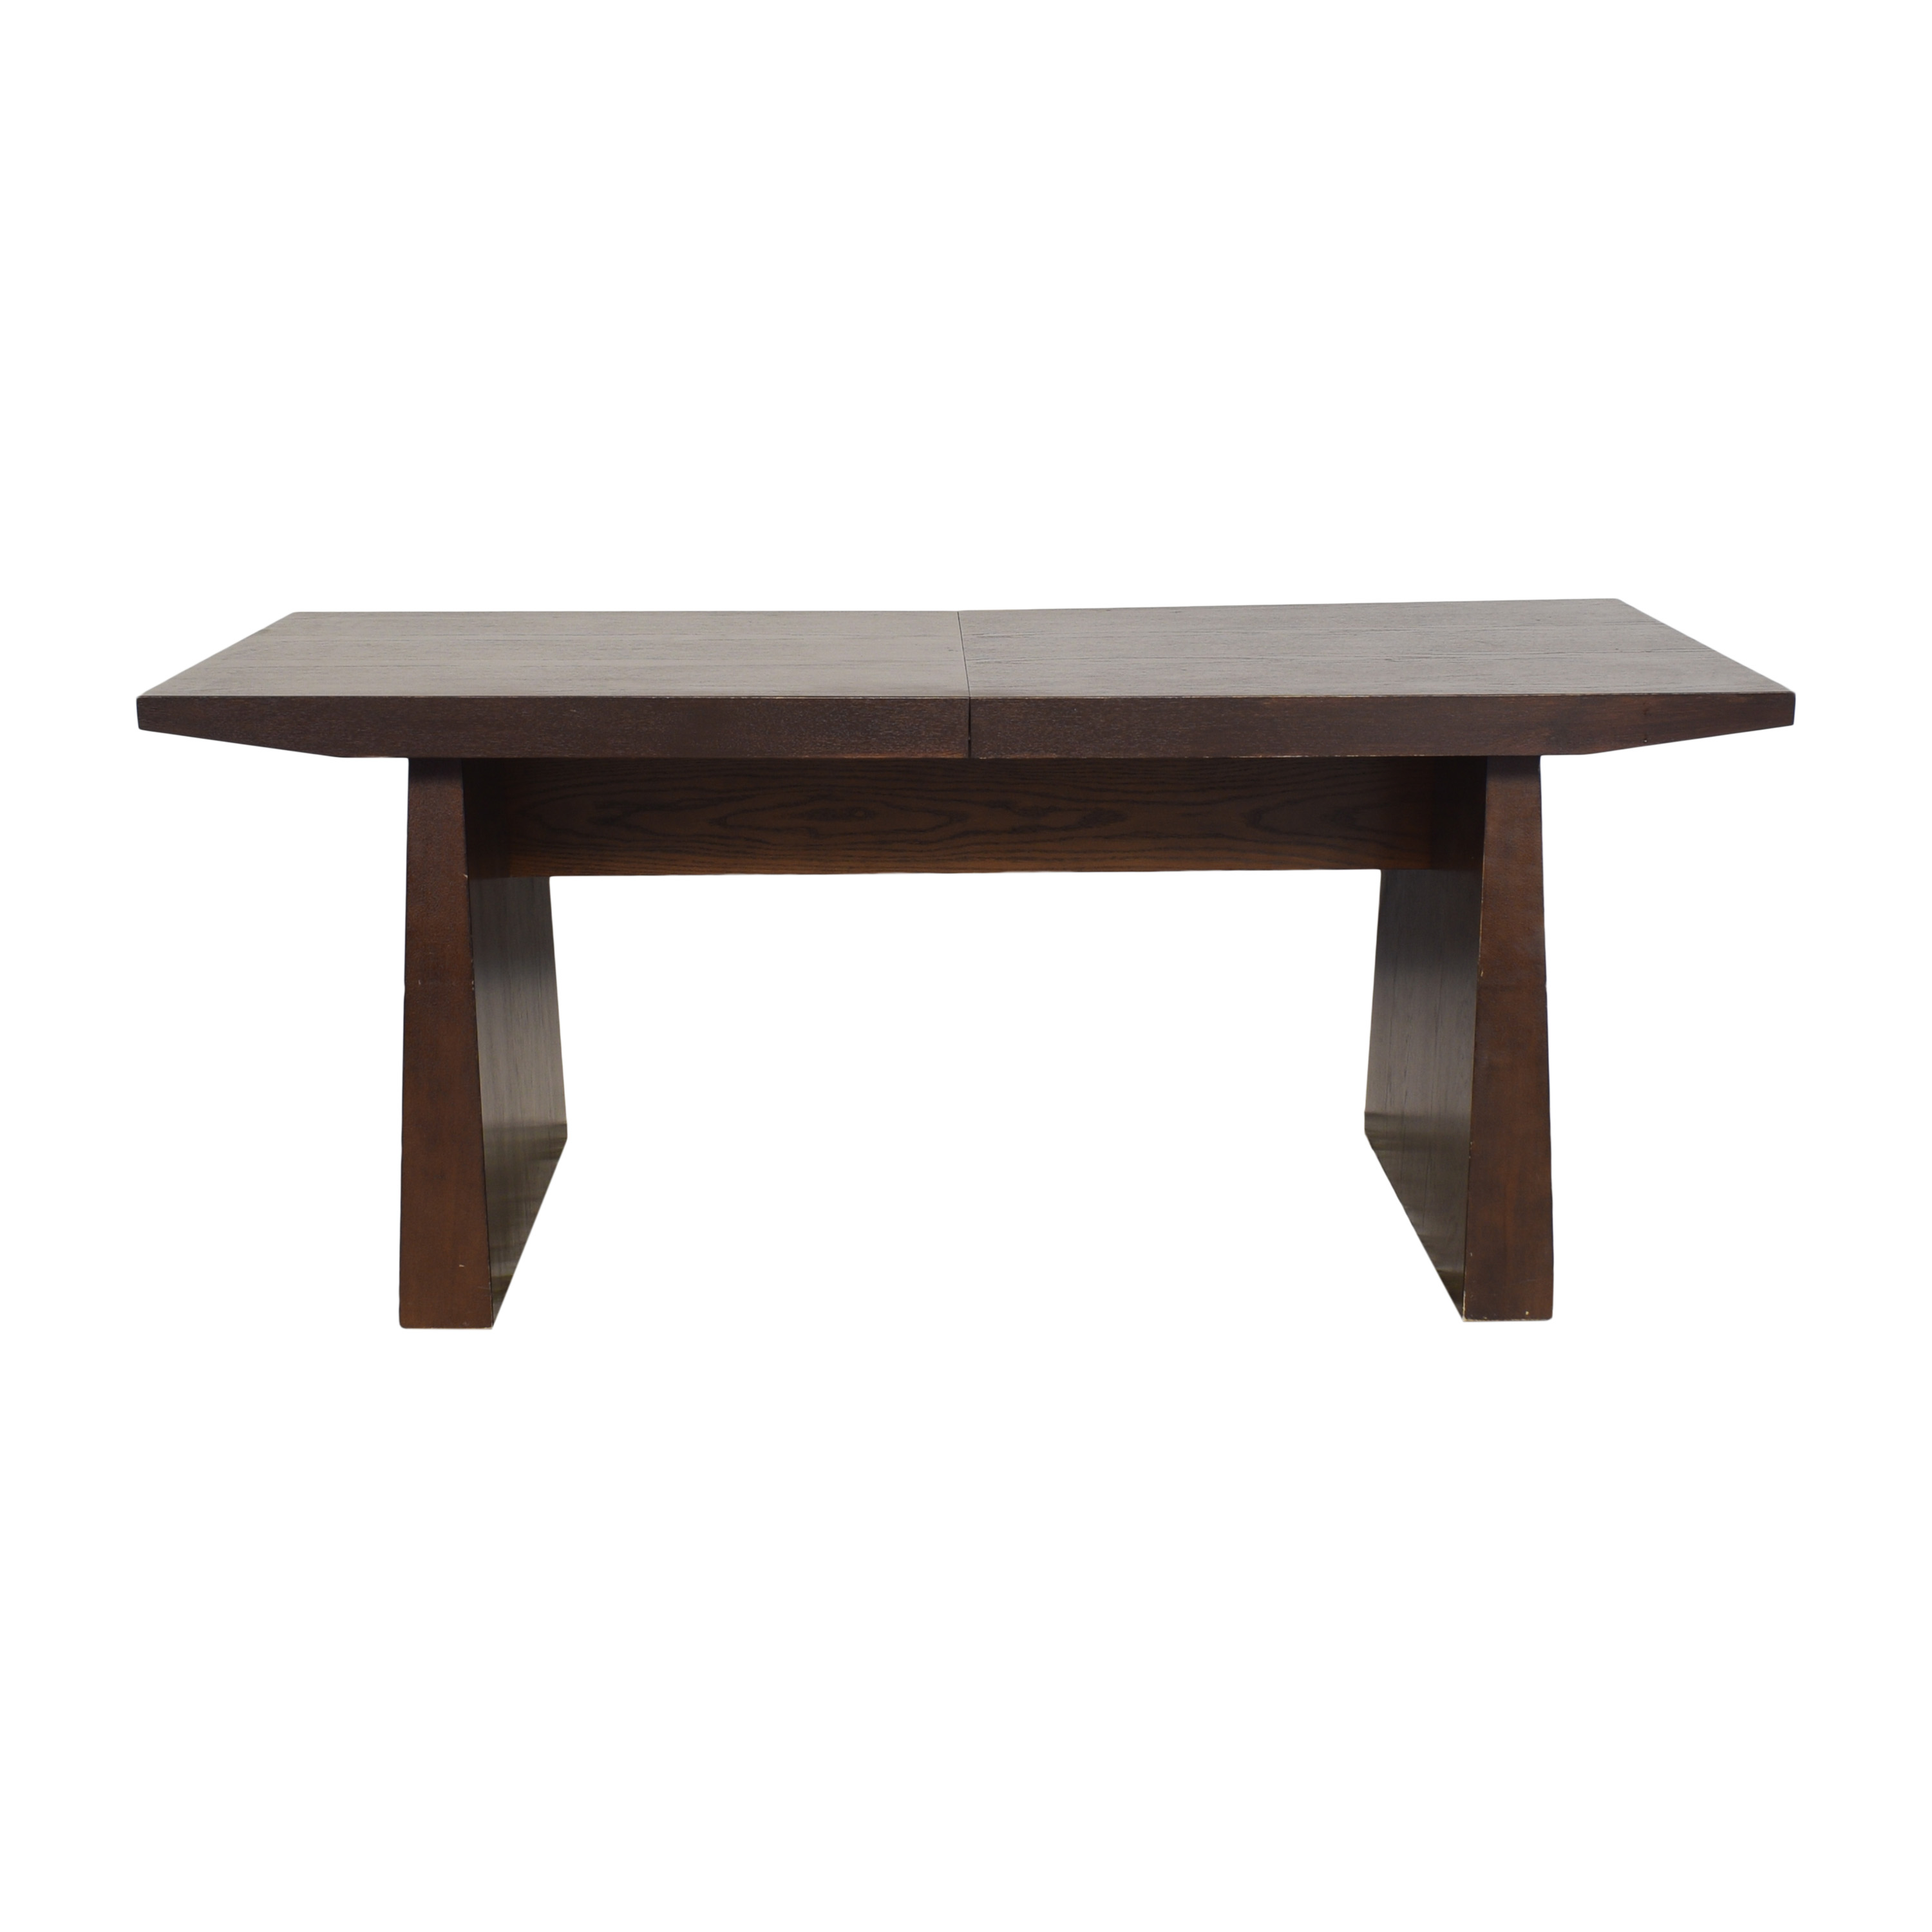 Overstock Overstock Hida Dining Table on sale